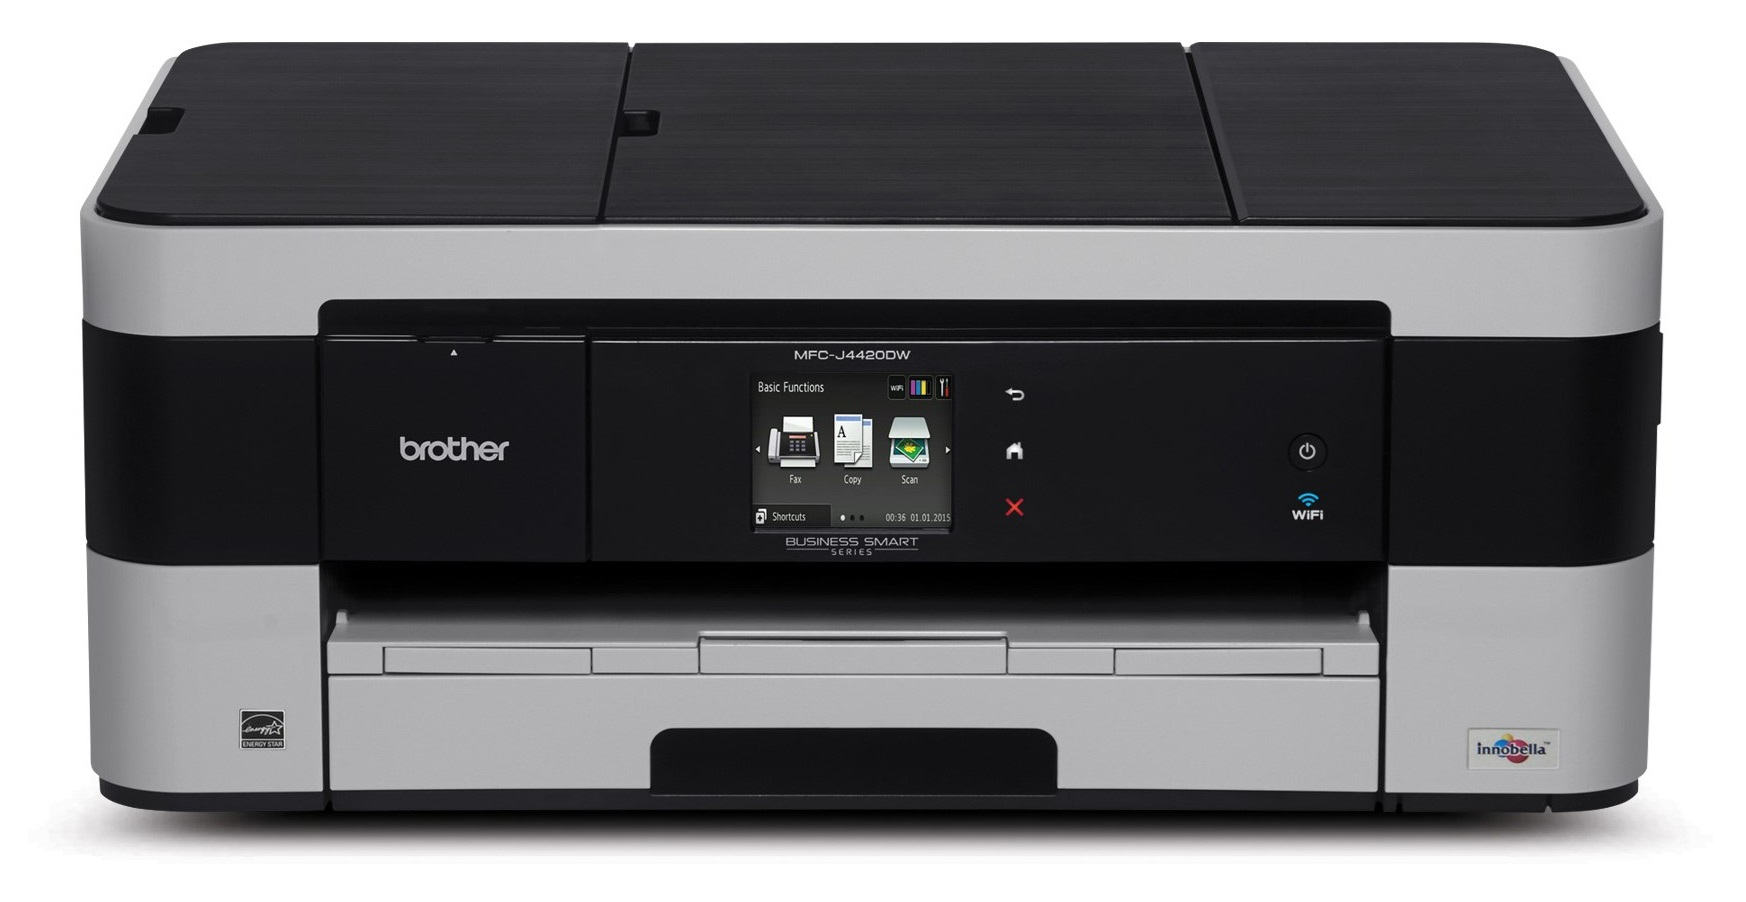 Brother MFC-J4420DW MFP A4 color ink print scan copy fax 20ppm Duplex WLAN (AT)